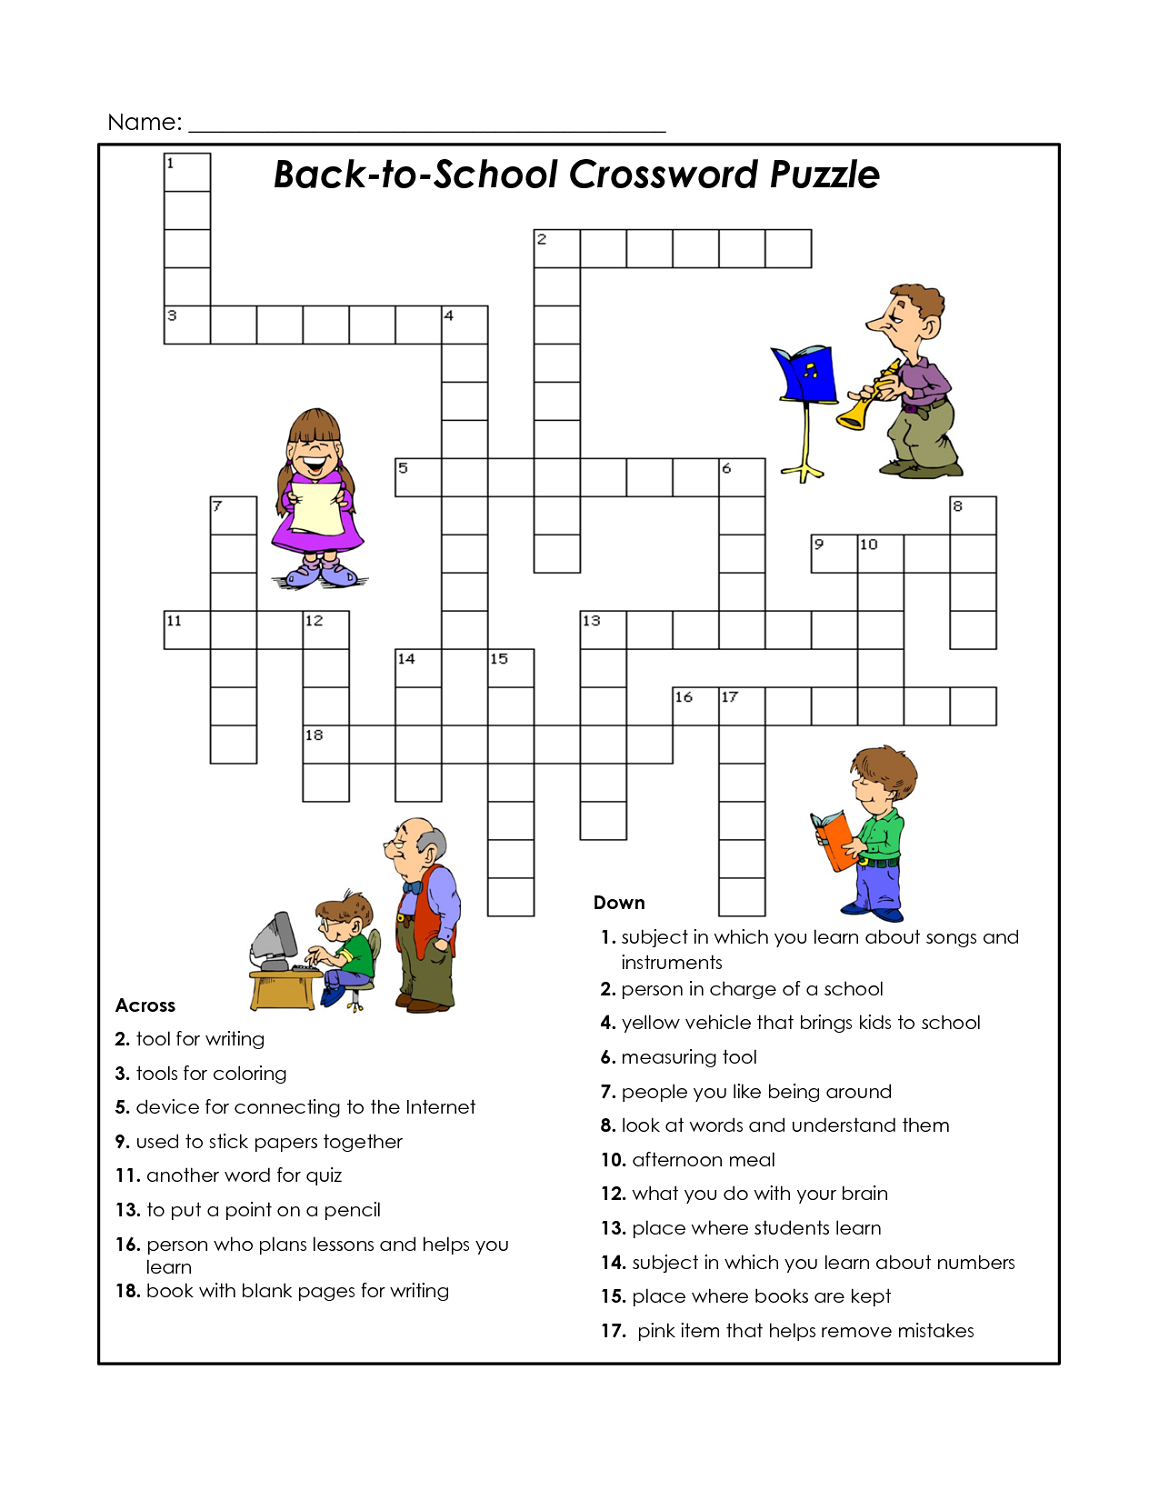 Kids' Crossword Puzzles to Print | Activity Shelter